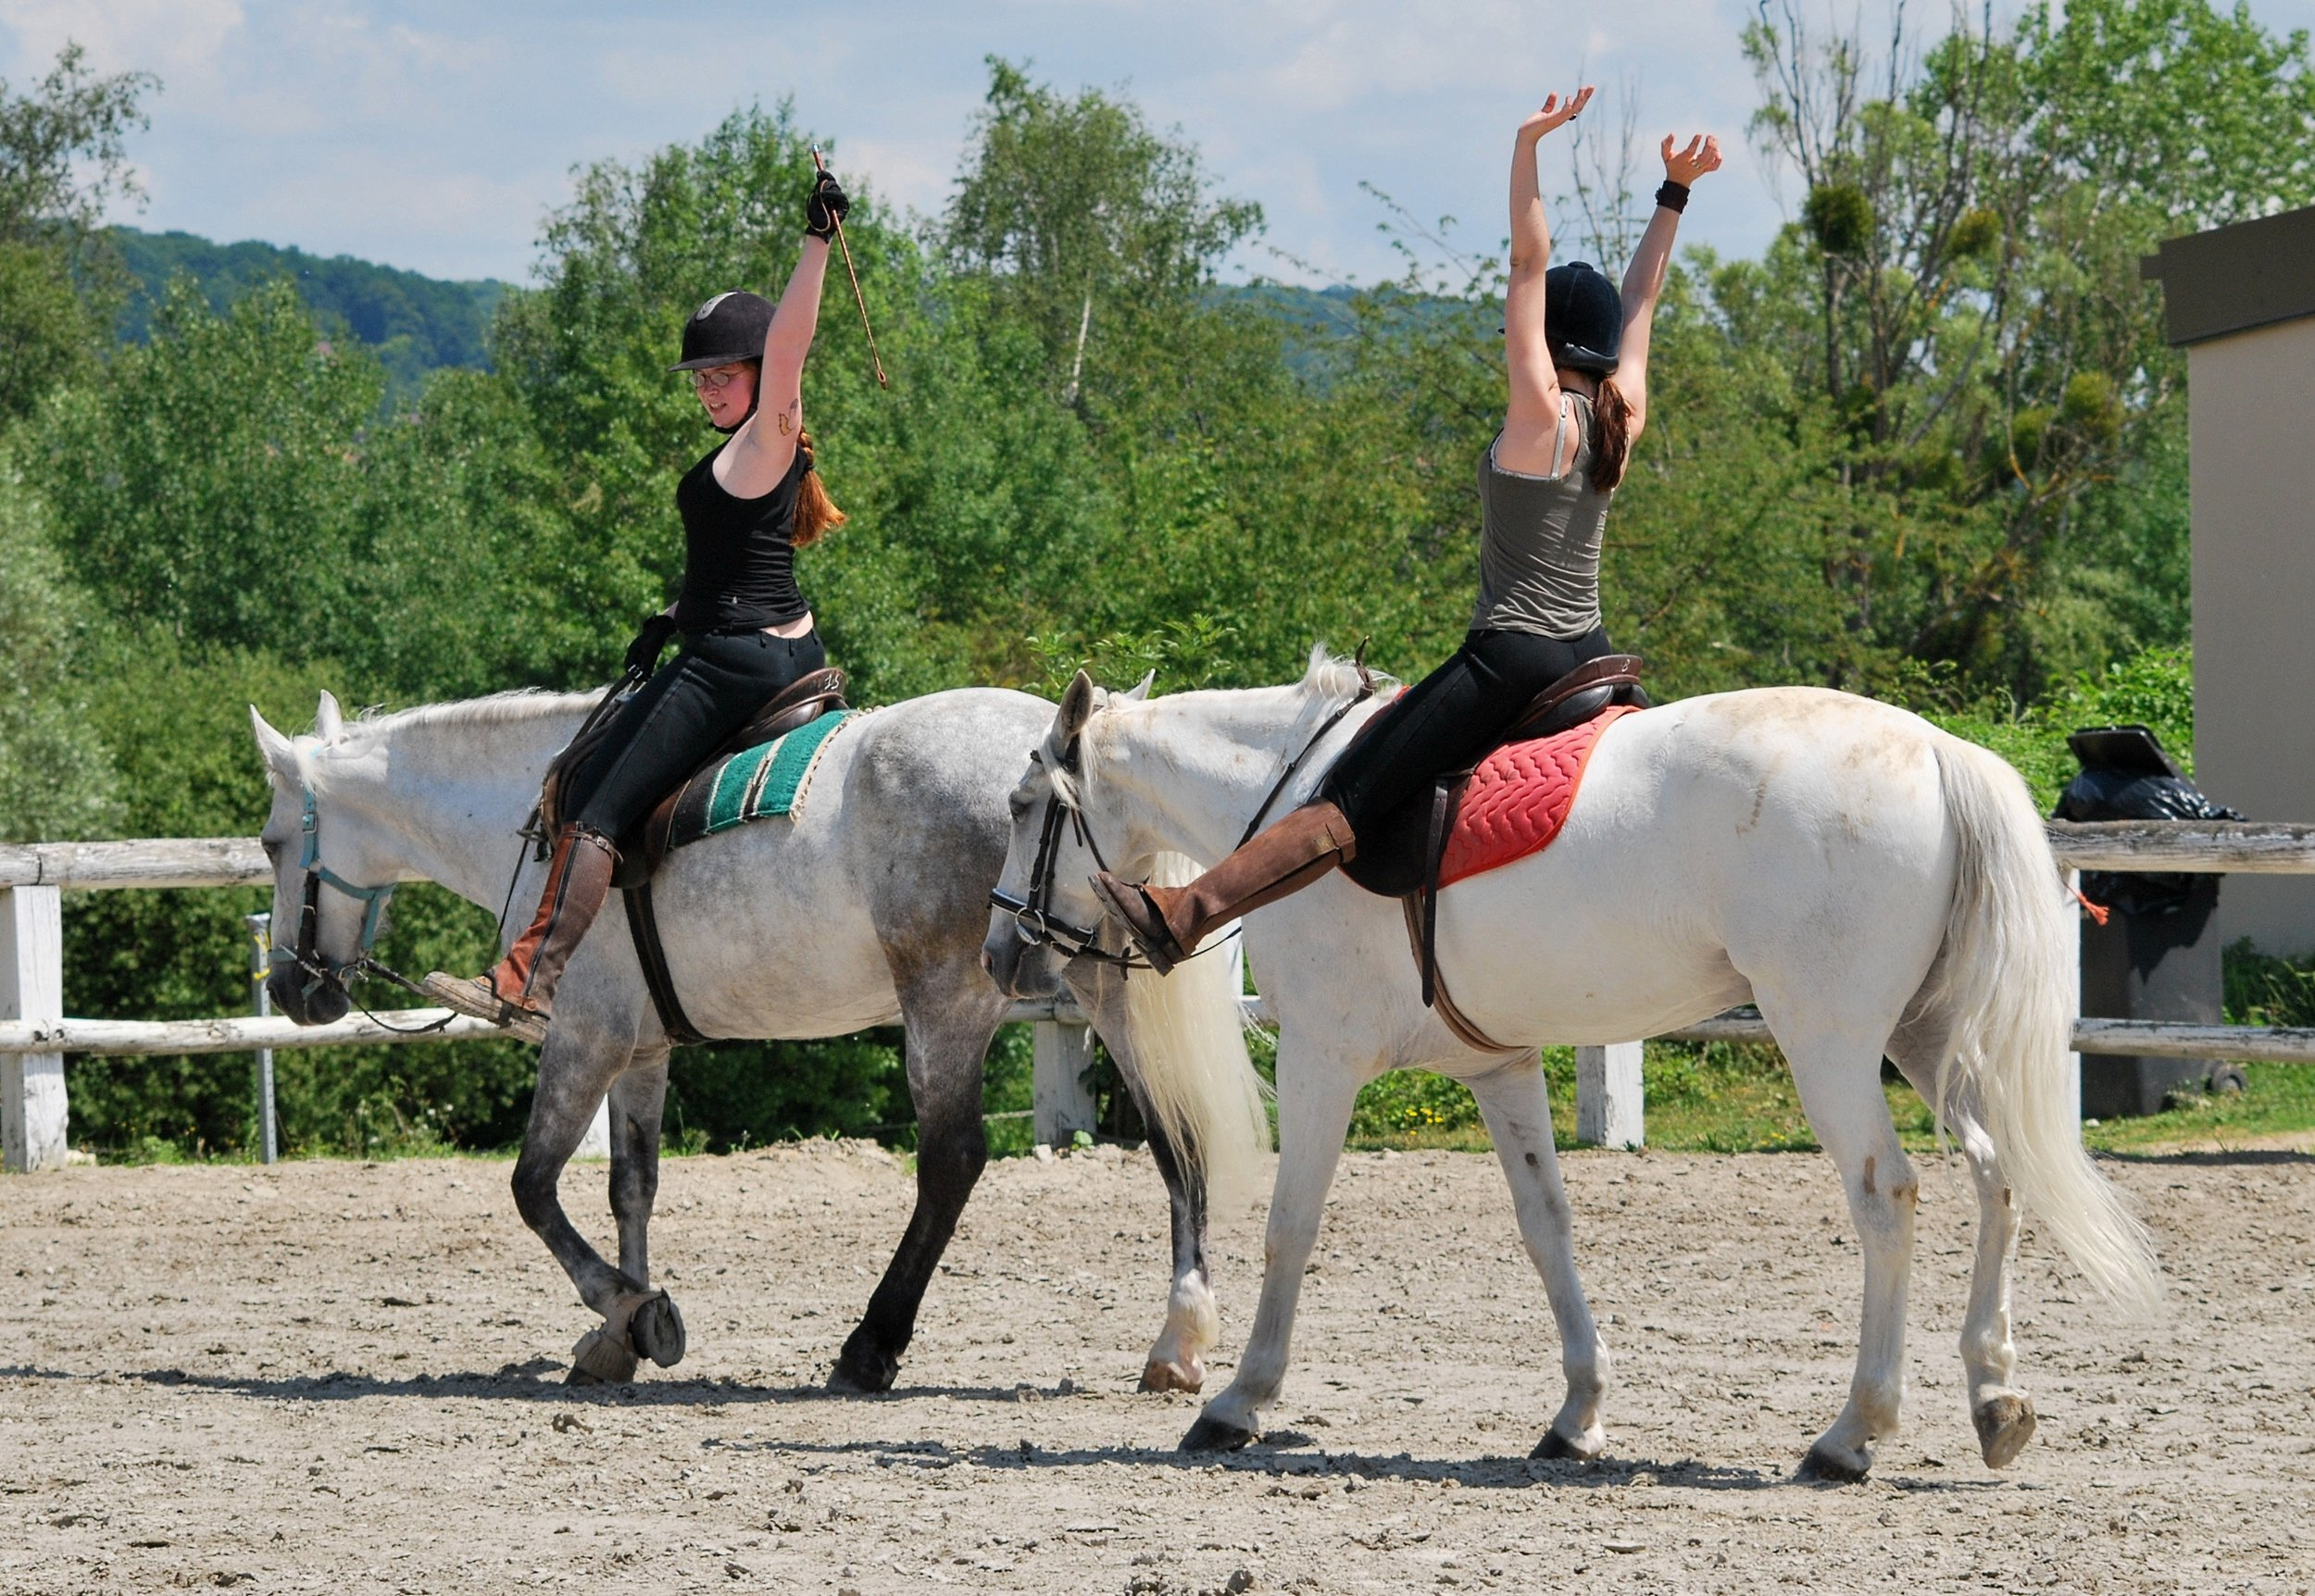 Equine horse and rider exercise .jpeg